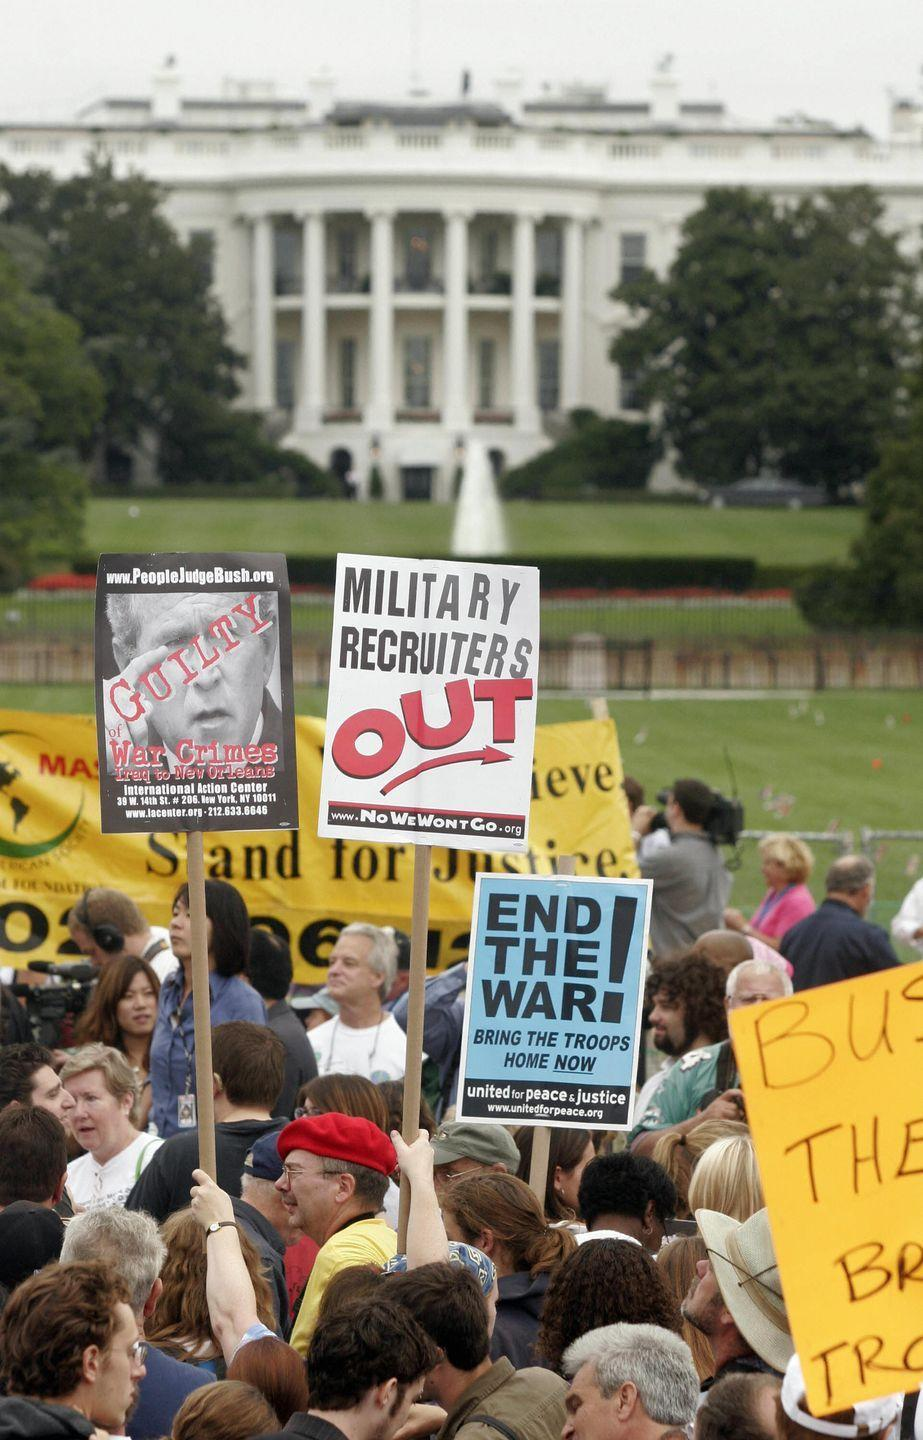 <p>Protestors made a variety of anti-war signs, while demonstrating for the end of the Iraq War. </p>